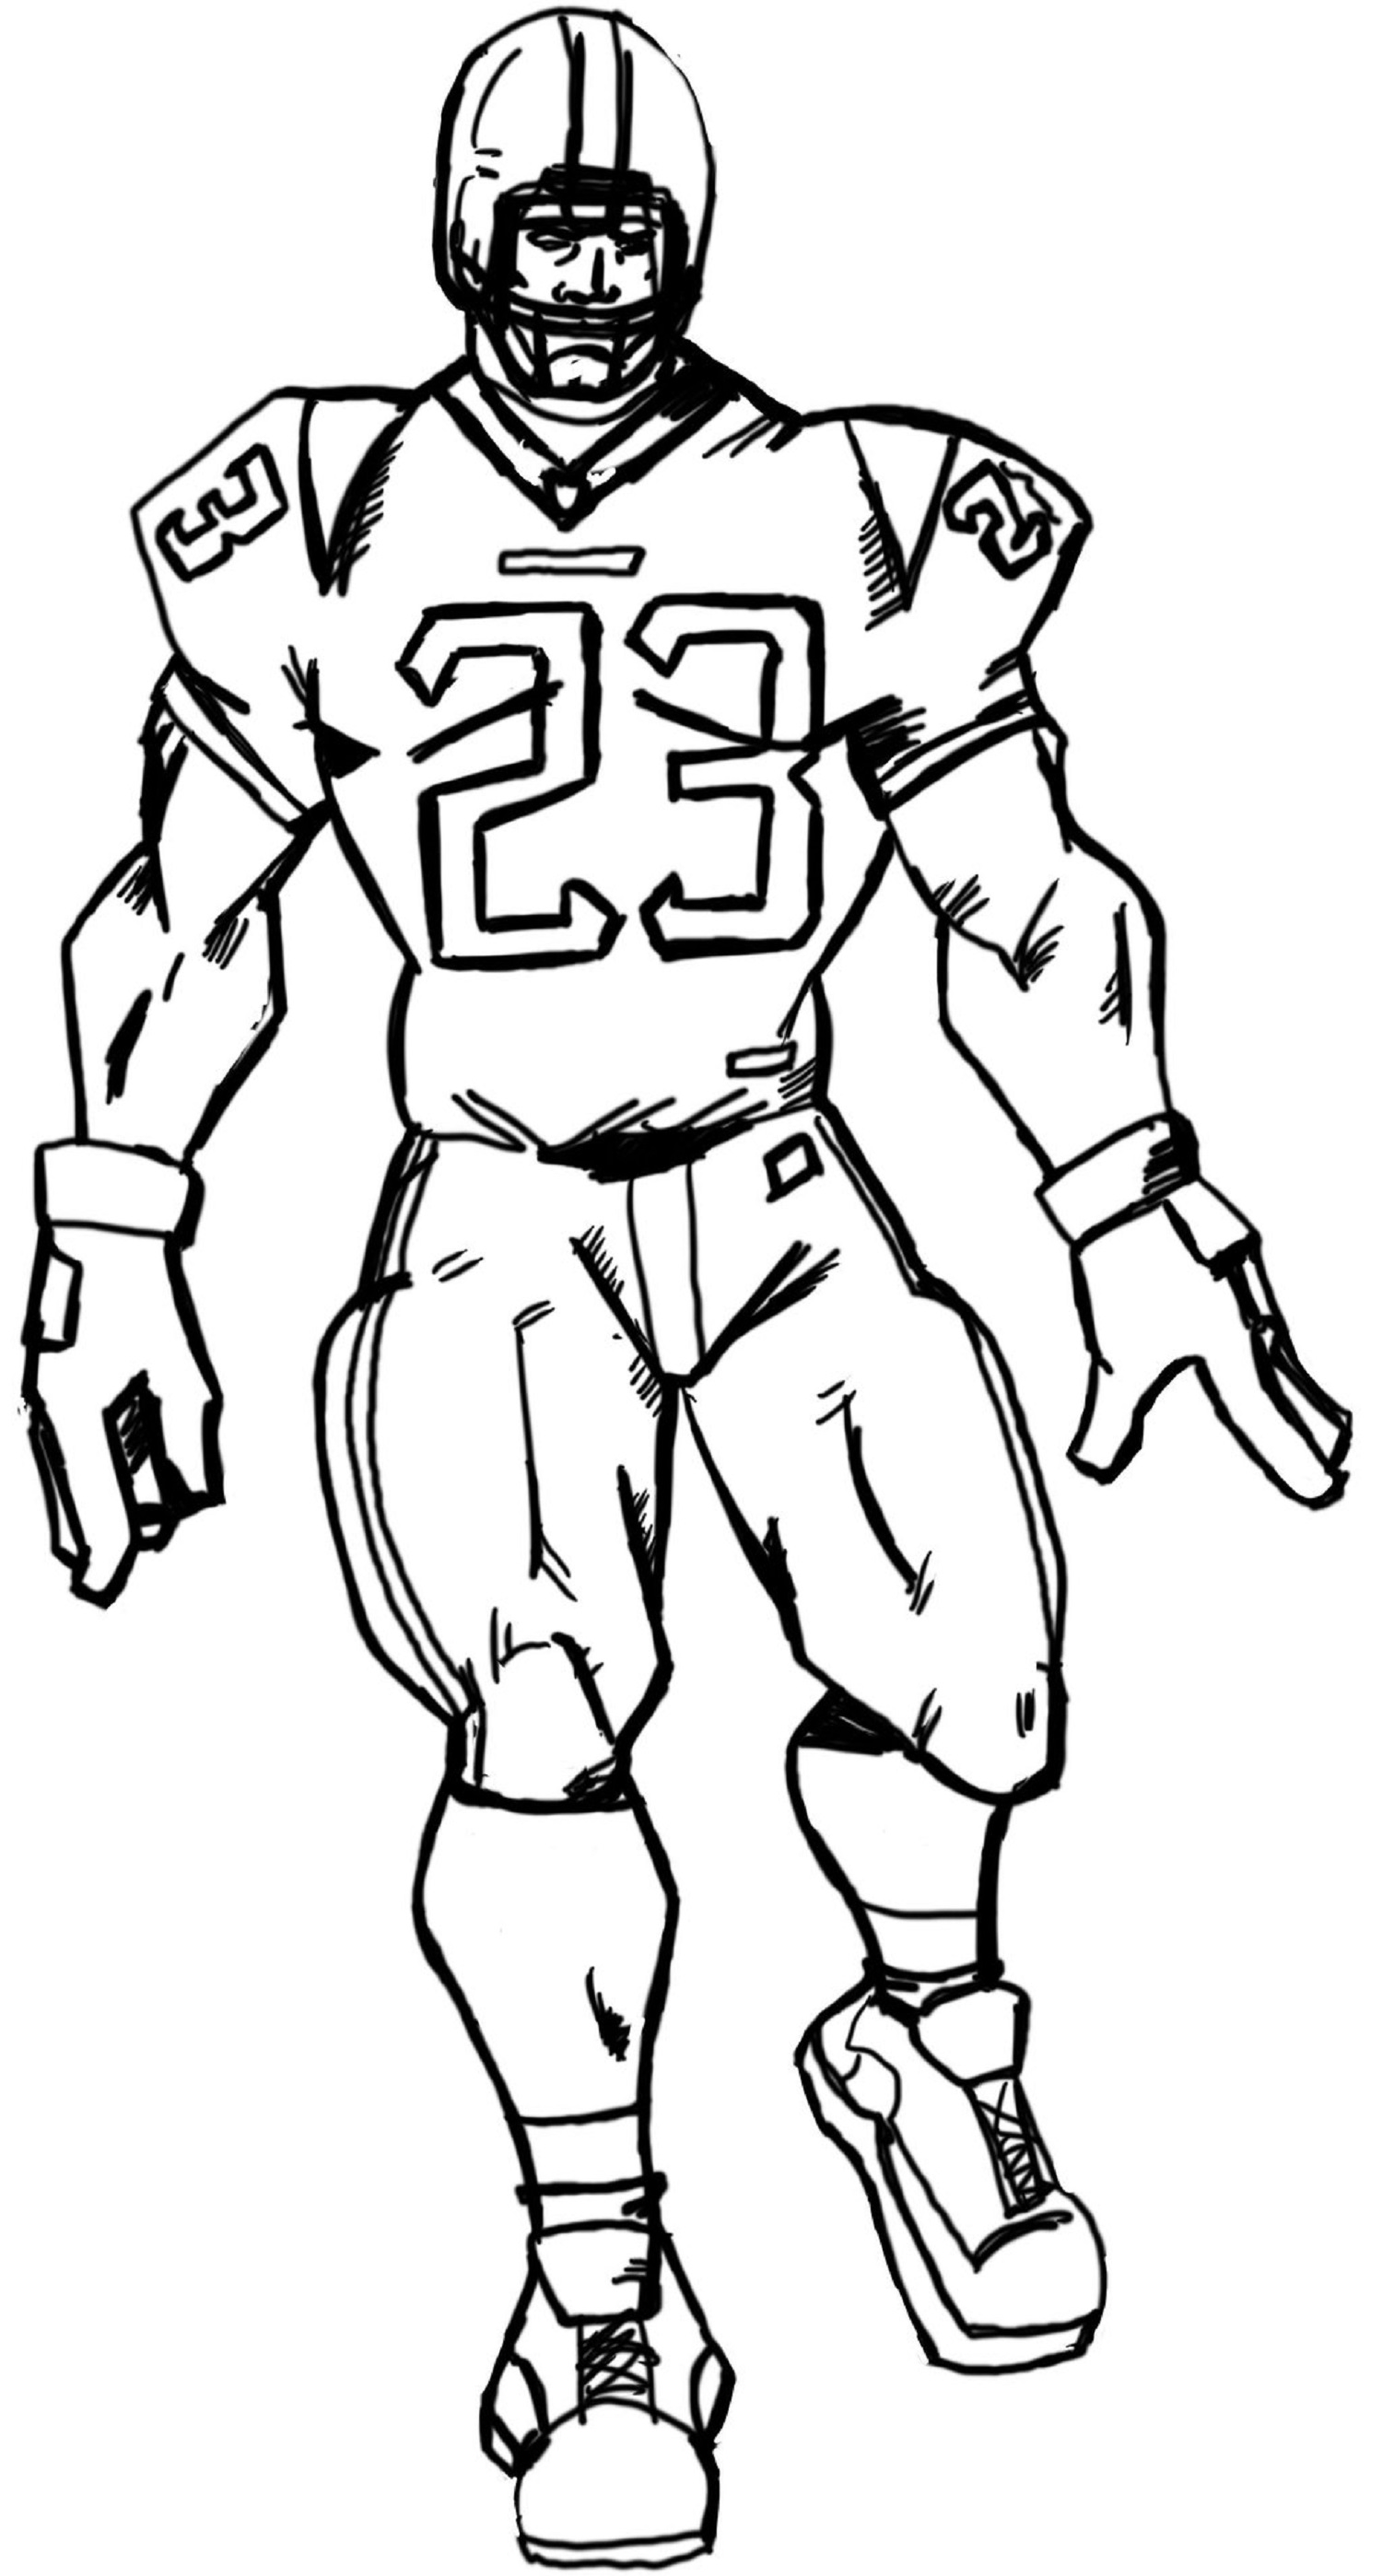 football player drawing steps soccer player drawing at getdrawings free download drawing player steps football